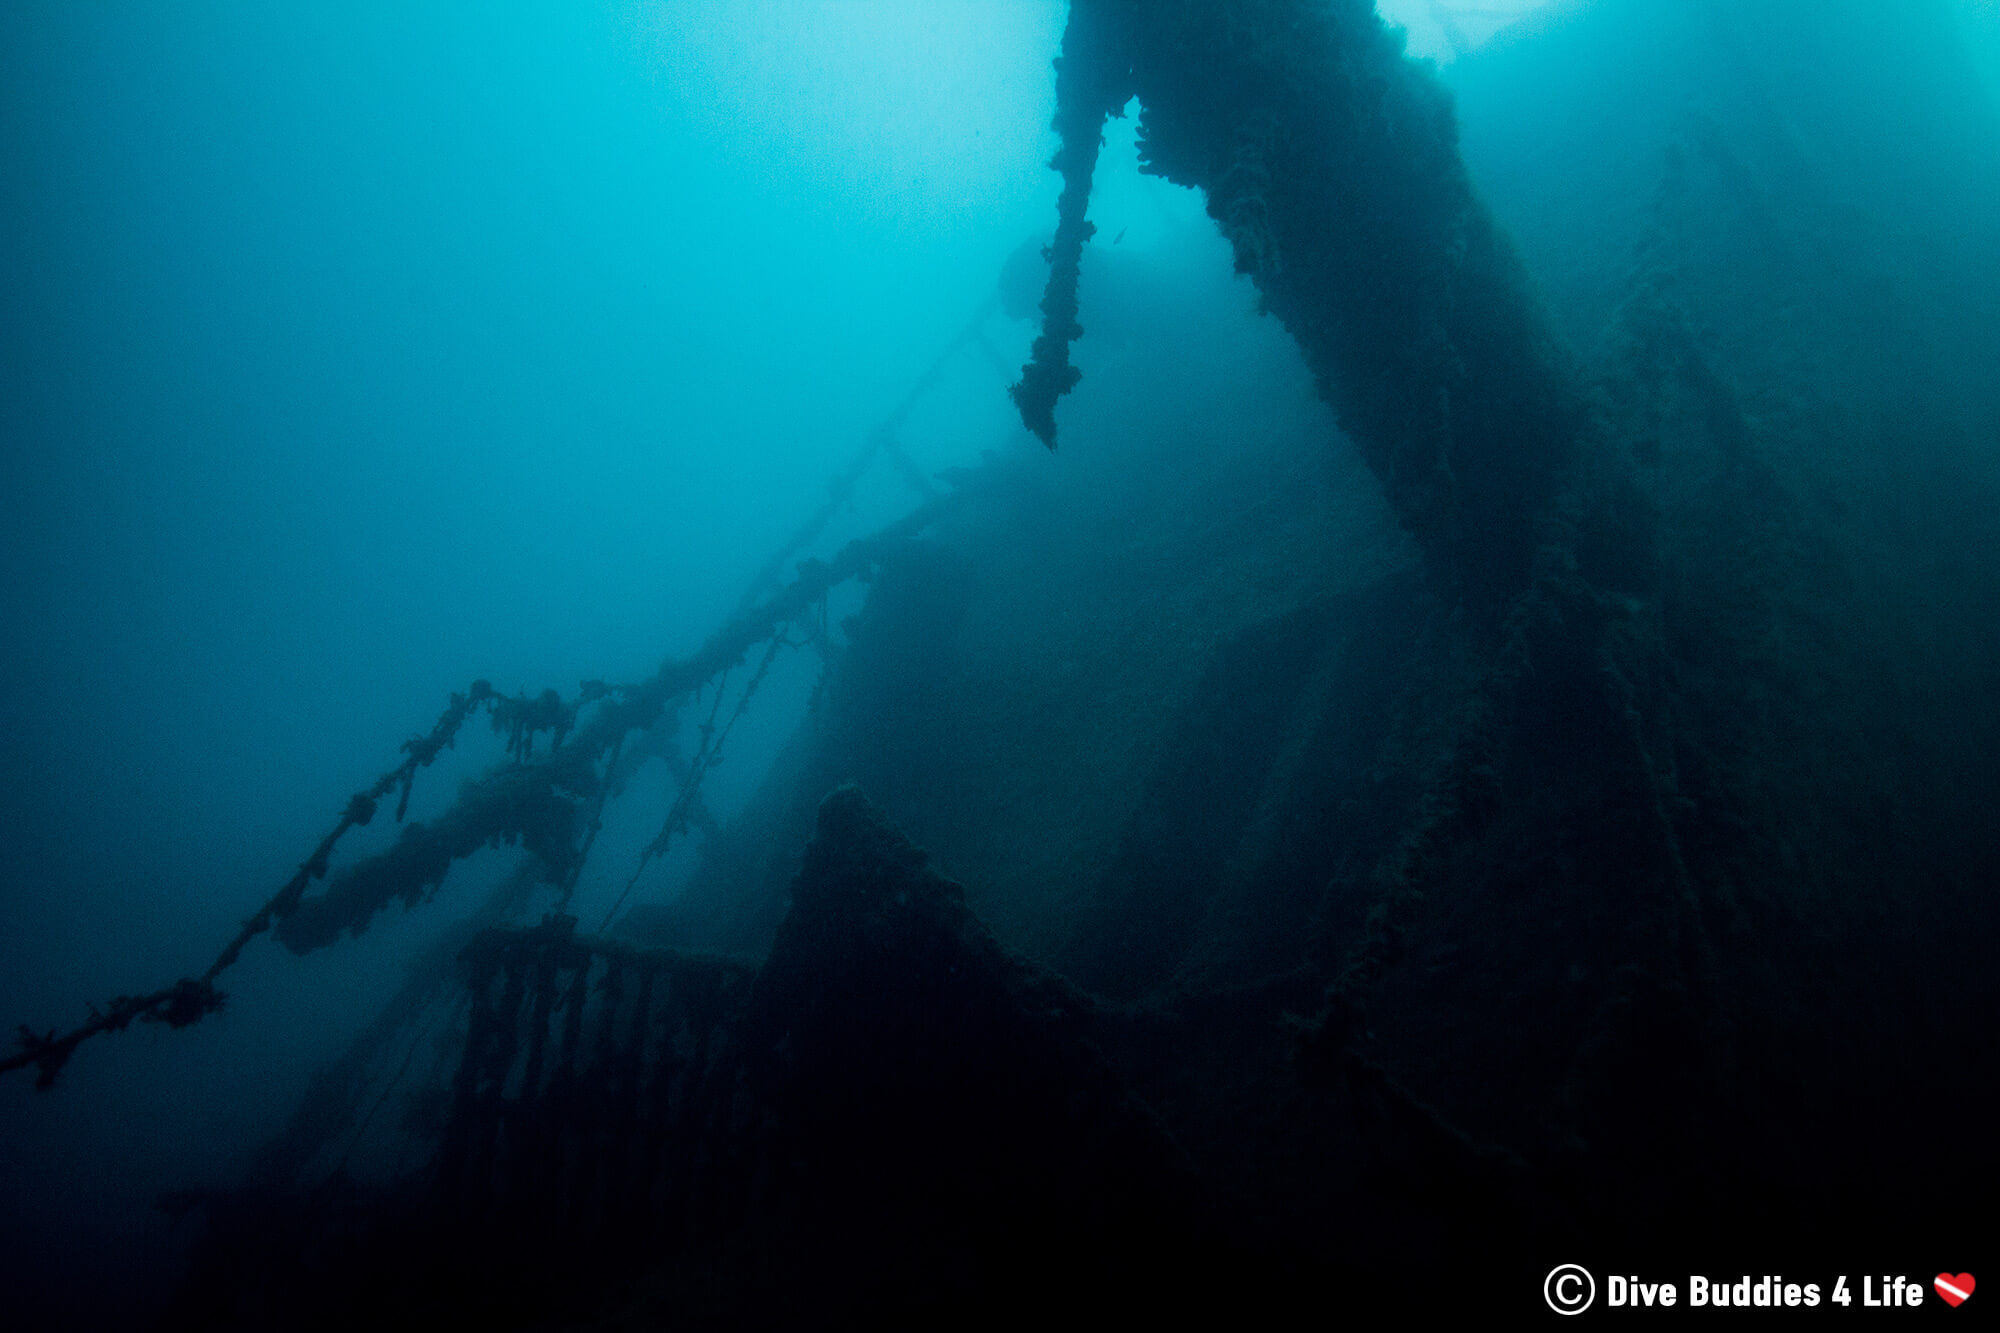 The Spooky Ghost Ship From WWII Sunk On The Bottom Of The Sea Off The Coast Of Albania In Europe's Balkan Country